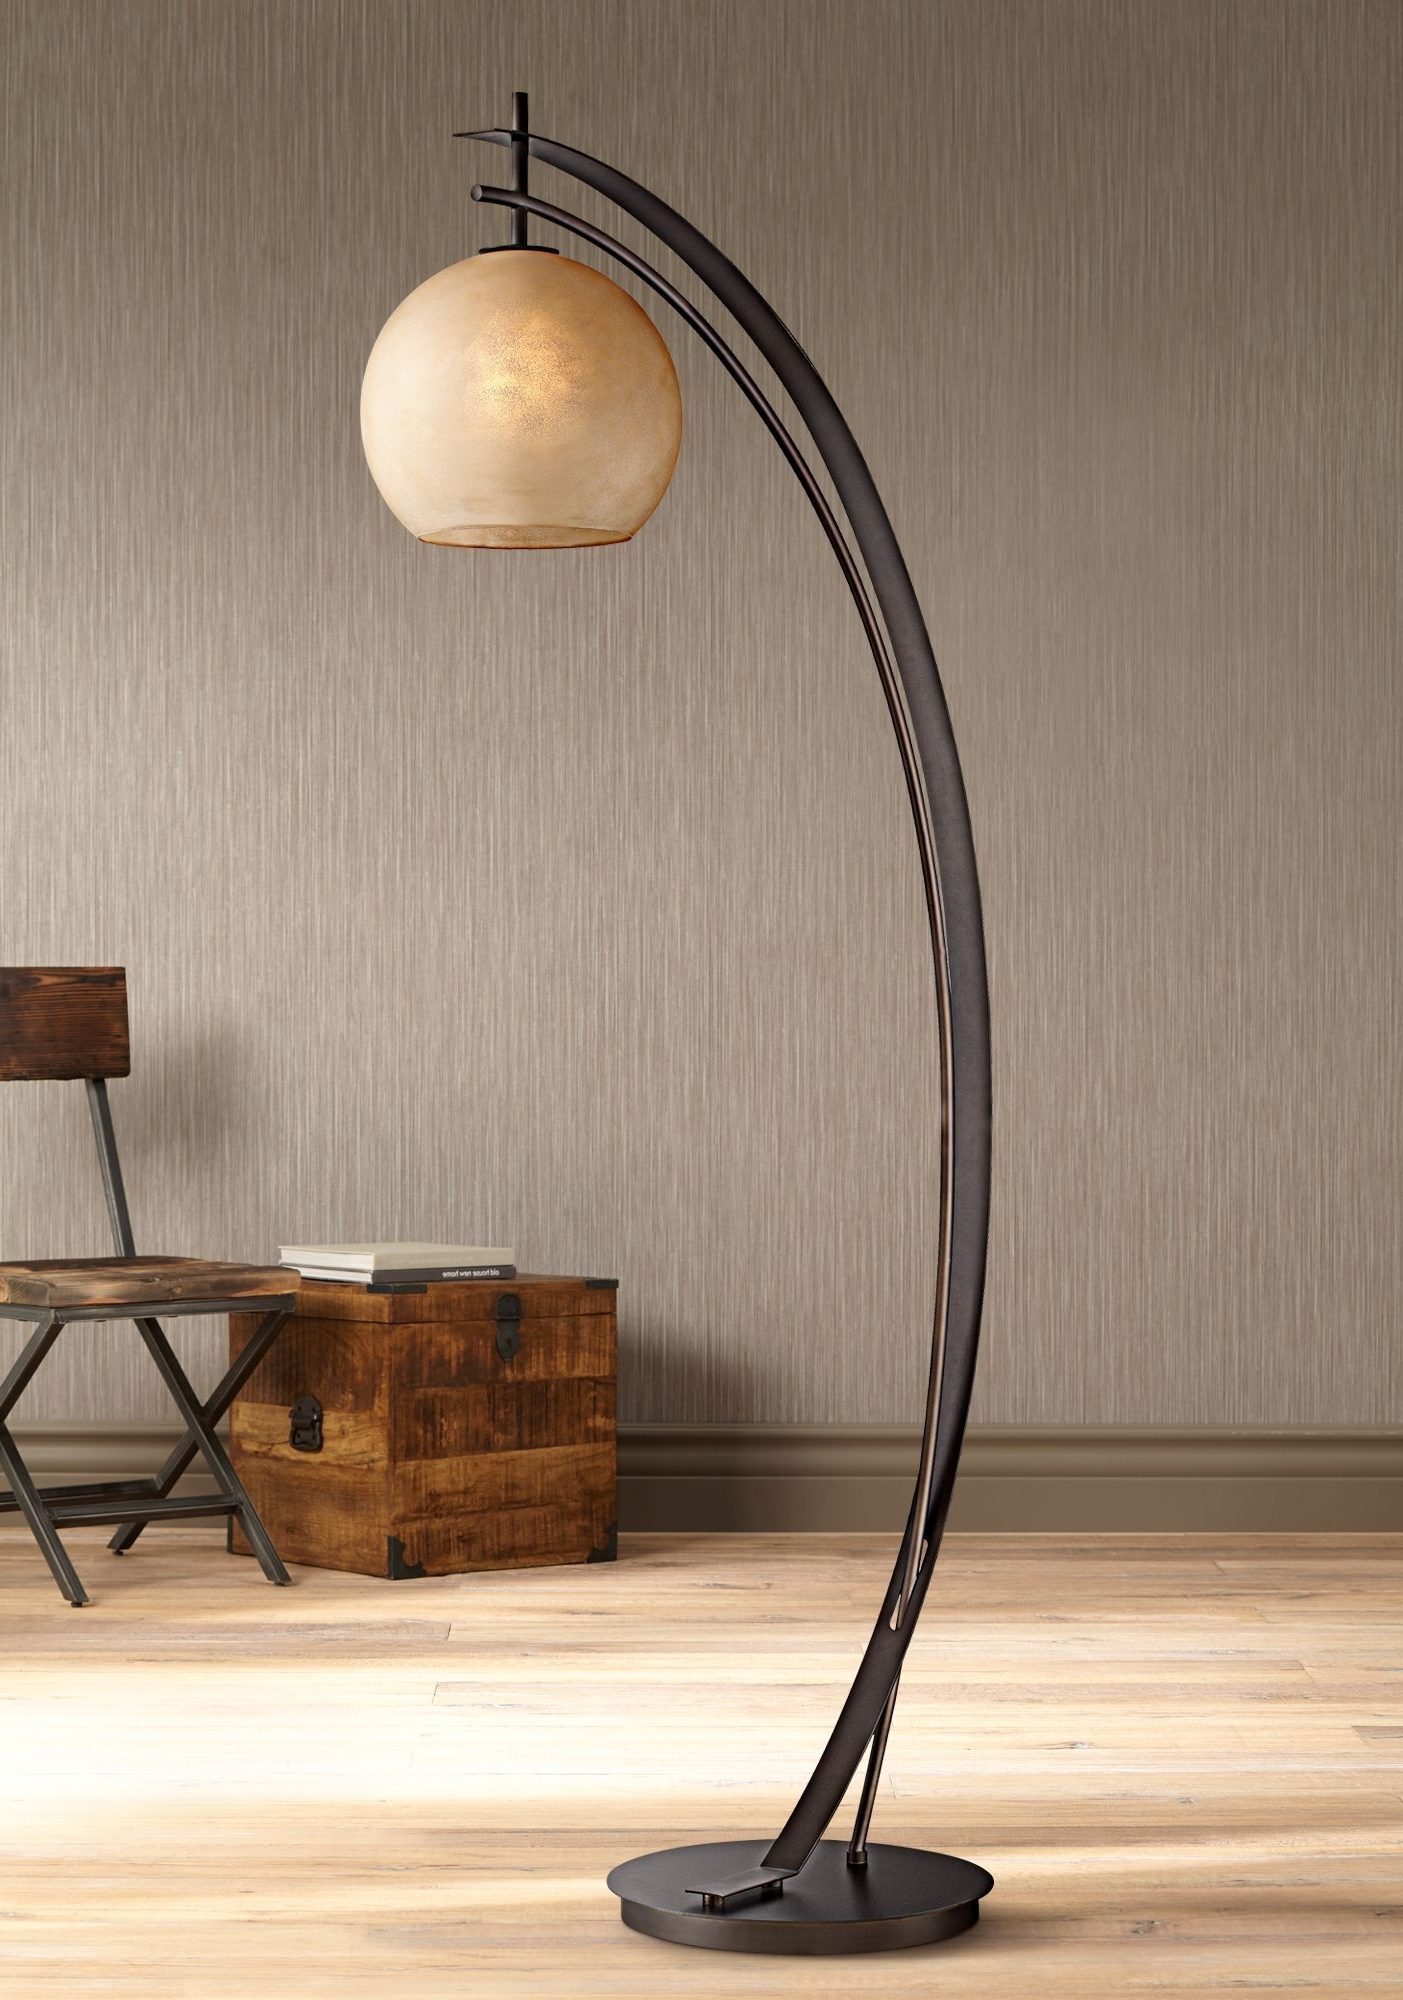 Bronze Living Room Table Lamps Intended For Well Known Possini Euro Venus Oil Rubbed Bronze Metal Arc Floor Lamp – #eu1G (View 7 of 15)